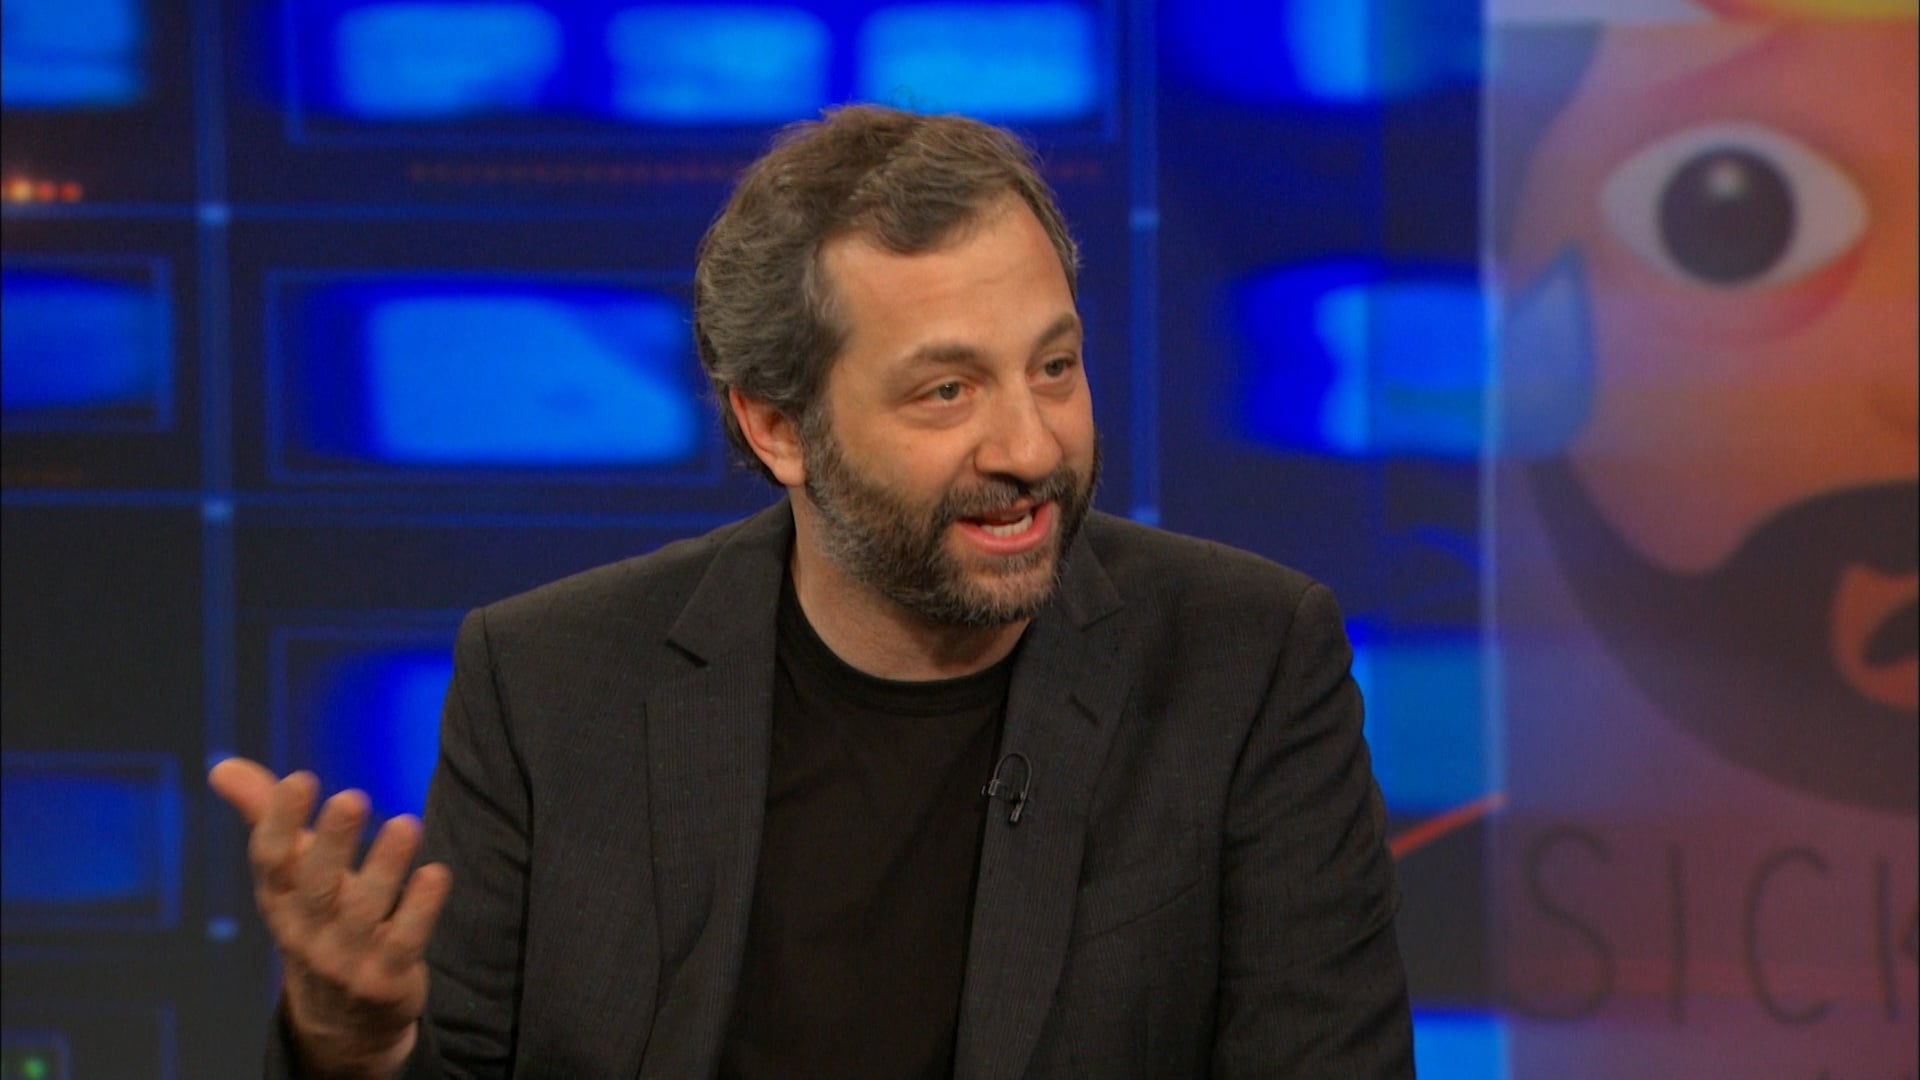 The Daily Show with Trevor Noah - Season 20 Episode 119 : Judd Apatow (1970)